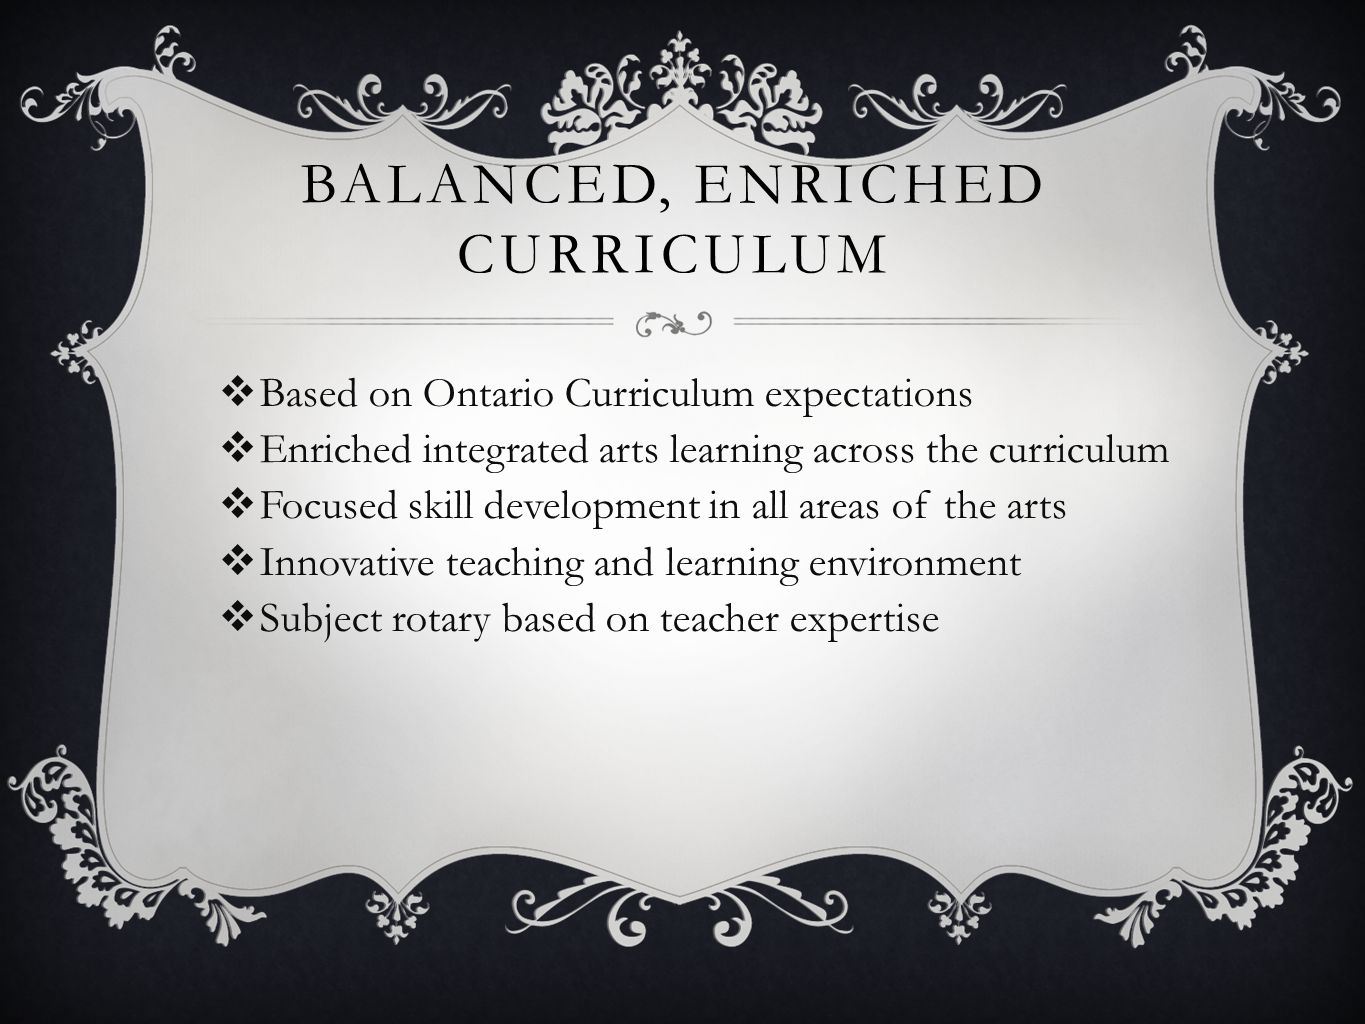 Balanced, enriched curriculum